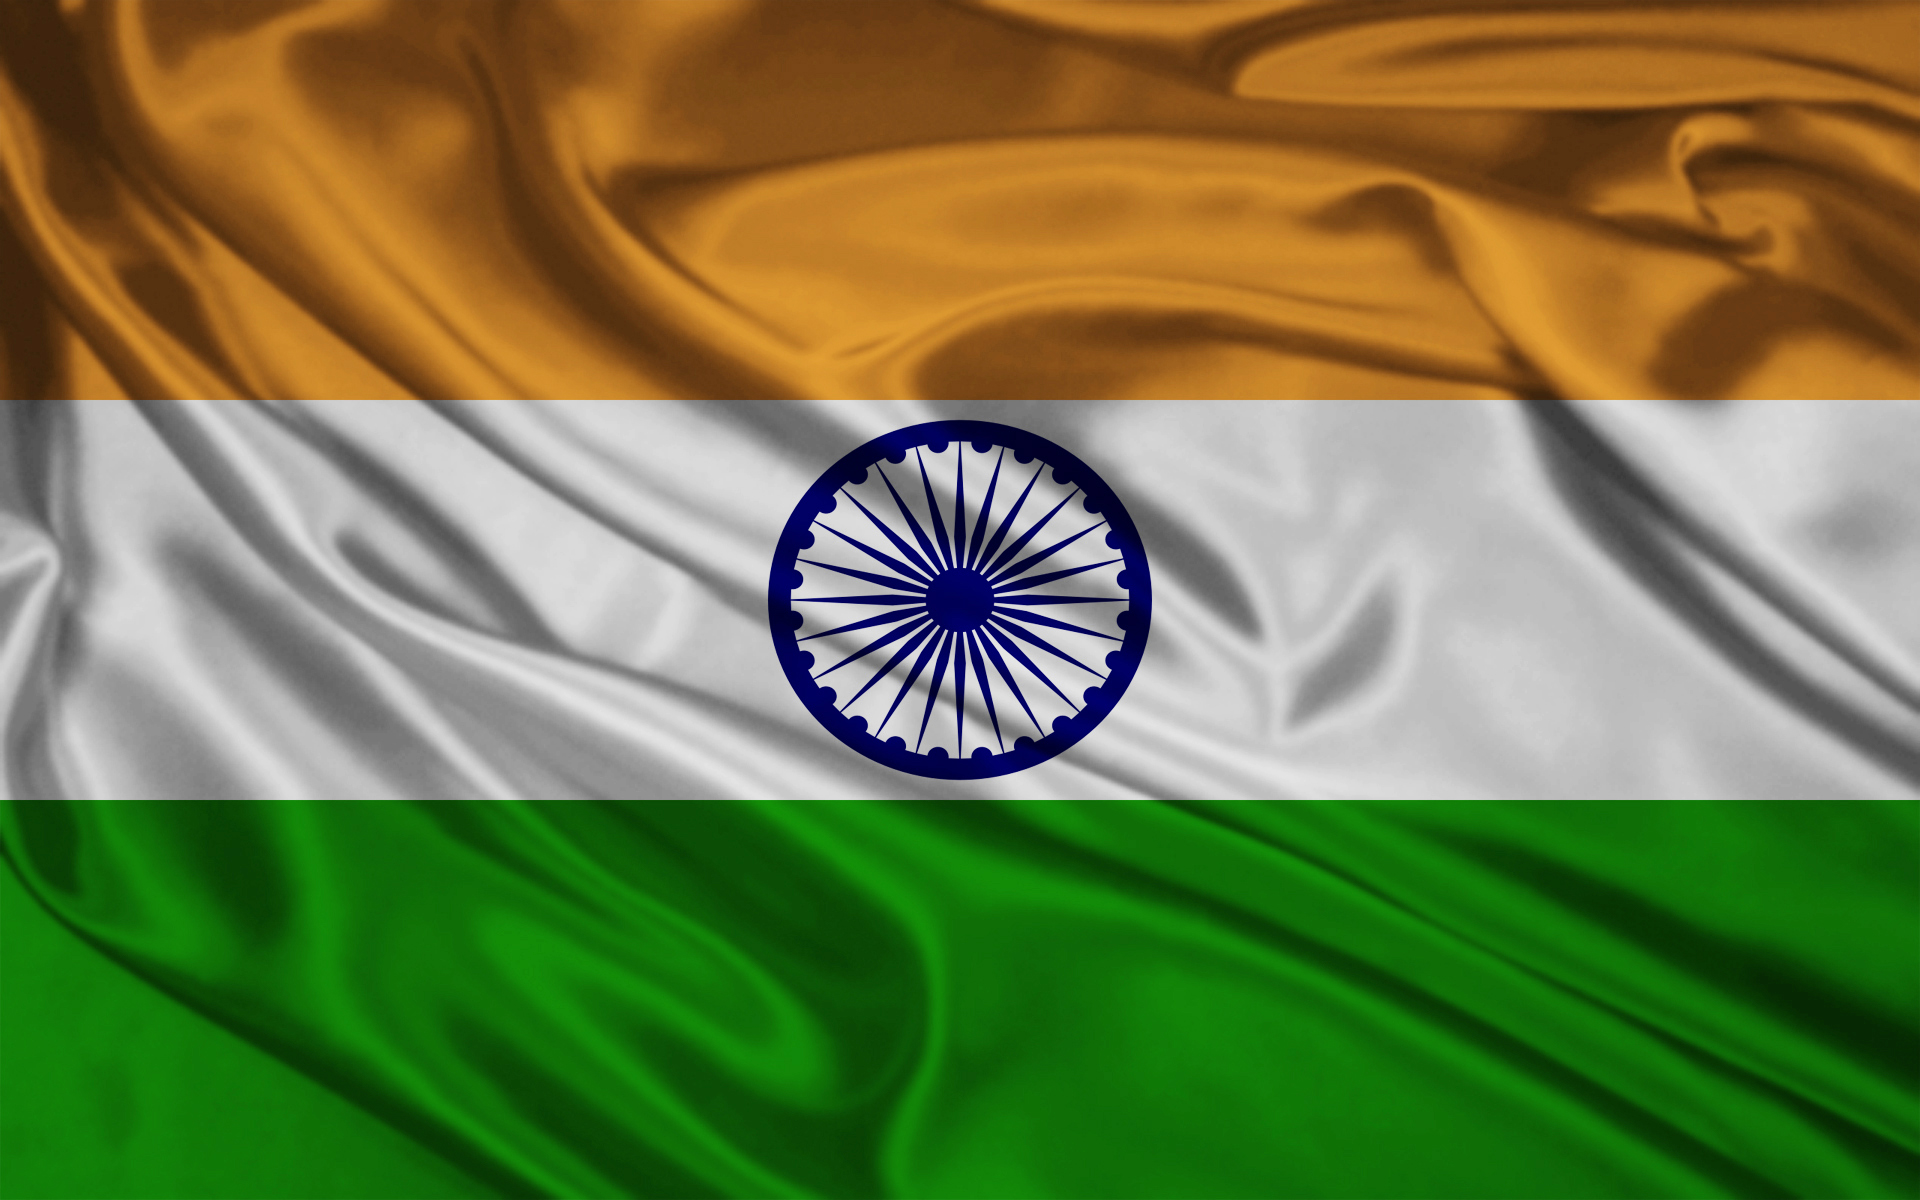 Indian Flag Background Hd: 4 HD India Flag Wallpapers